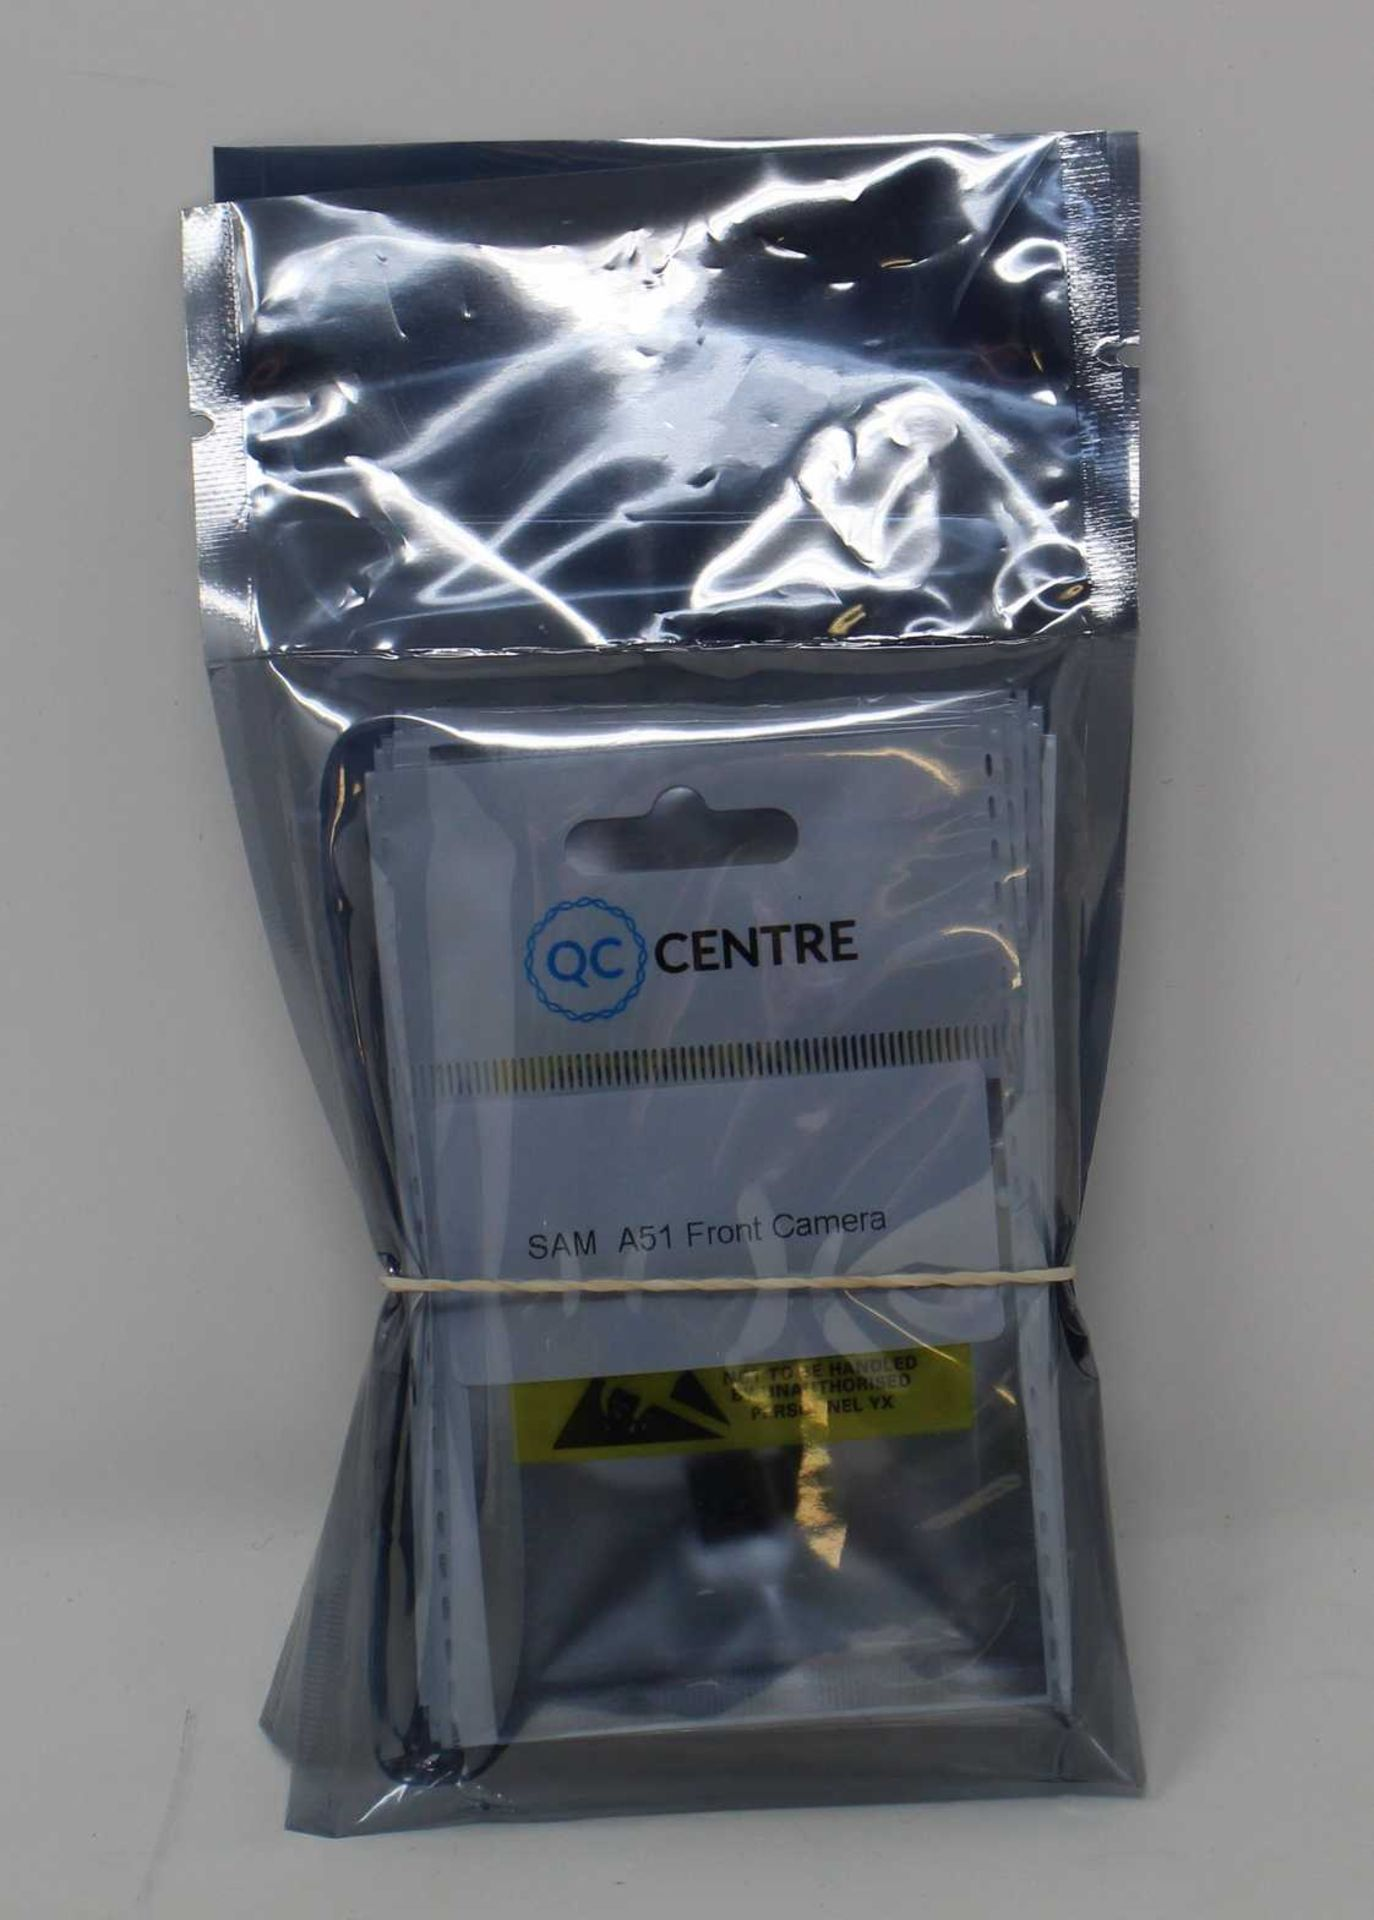 Ten as new QC Centre replacement system connector flex boards for Samsung A11 (Packaging sealed).